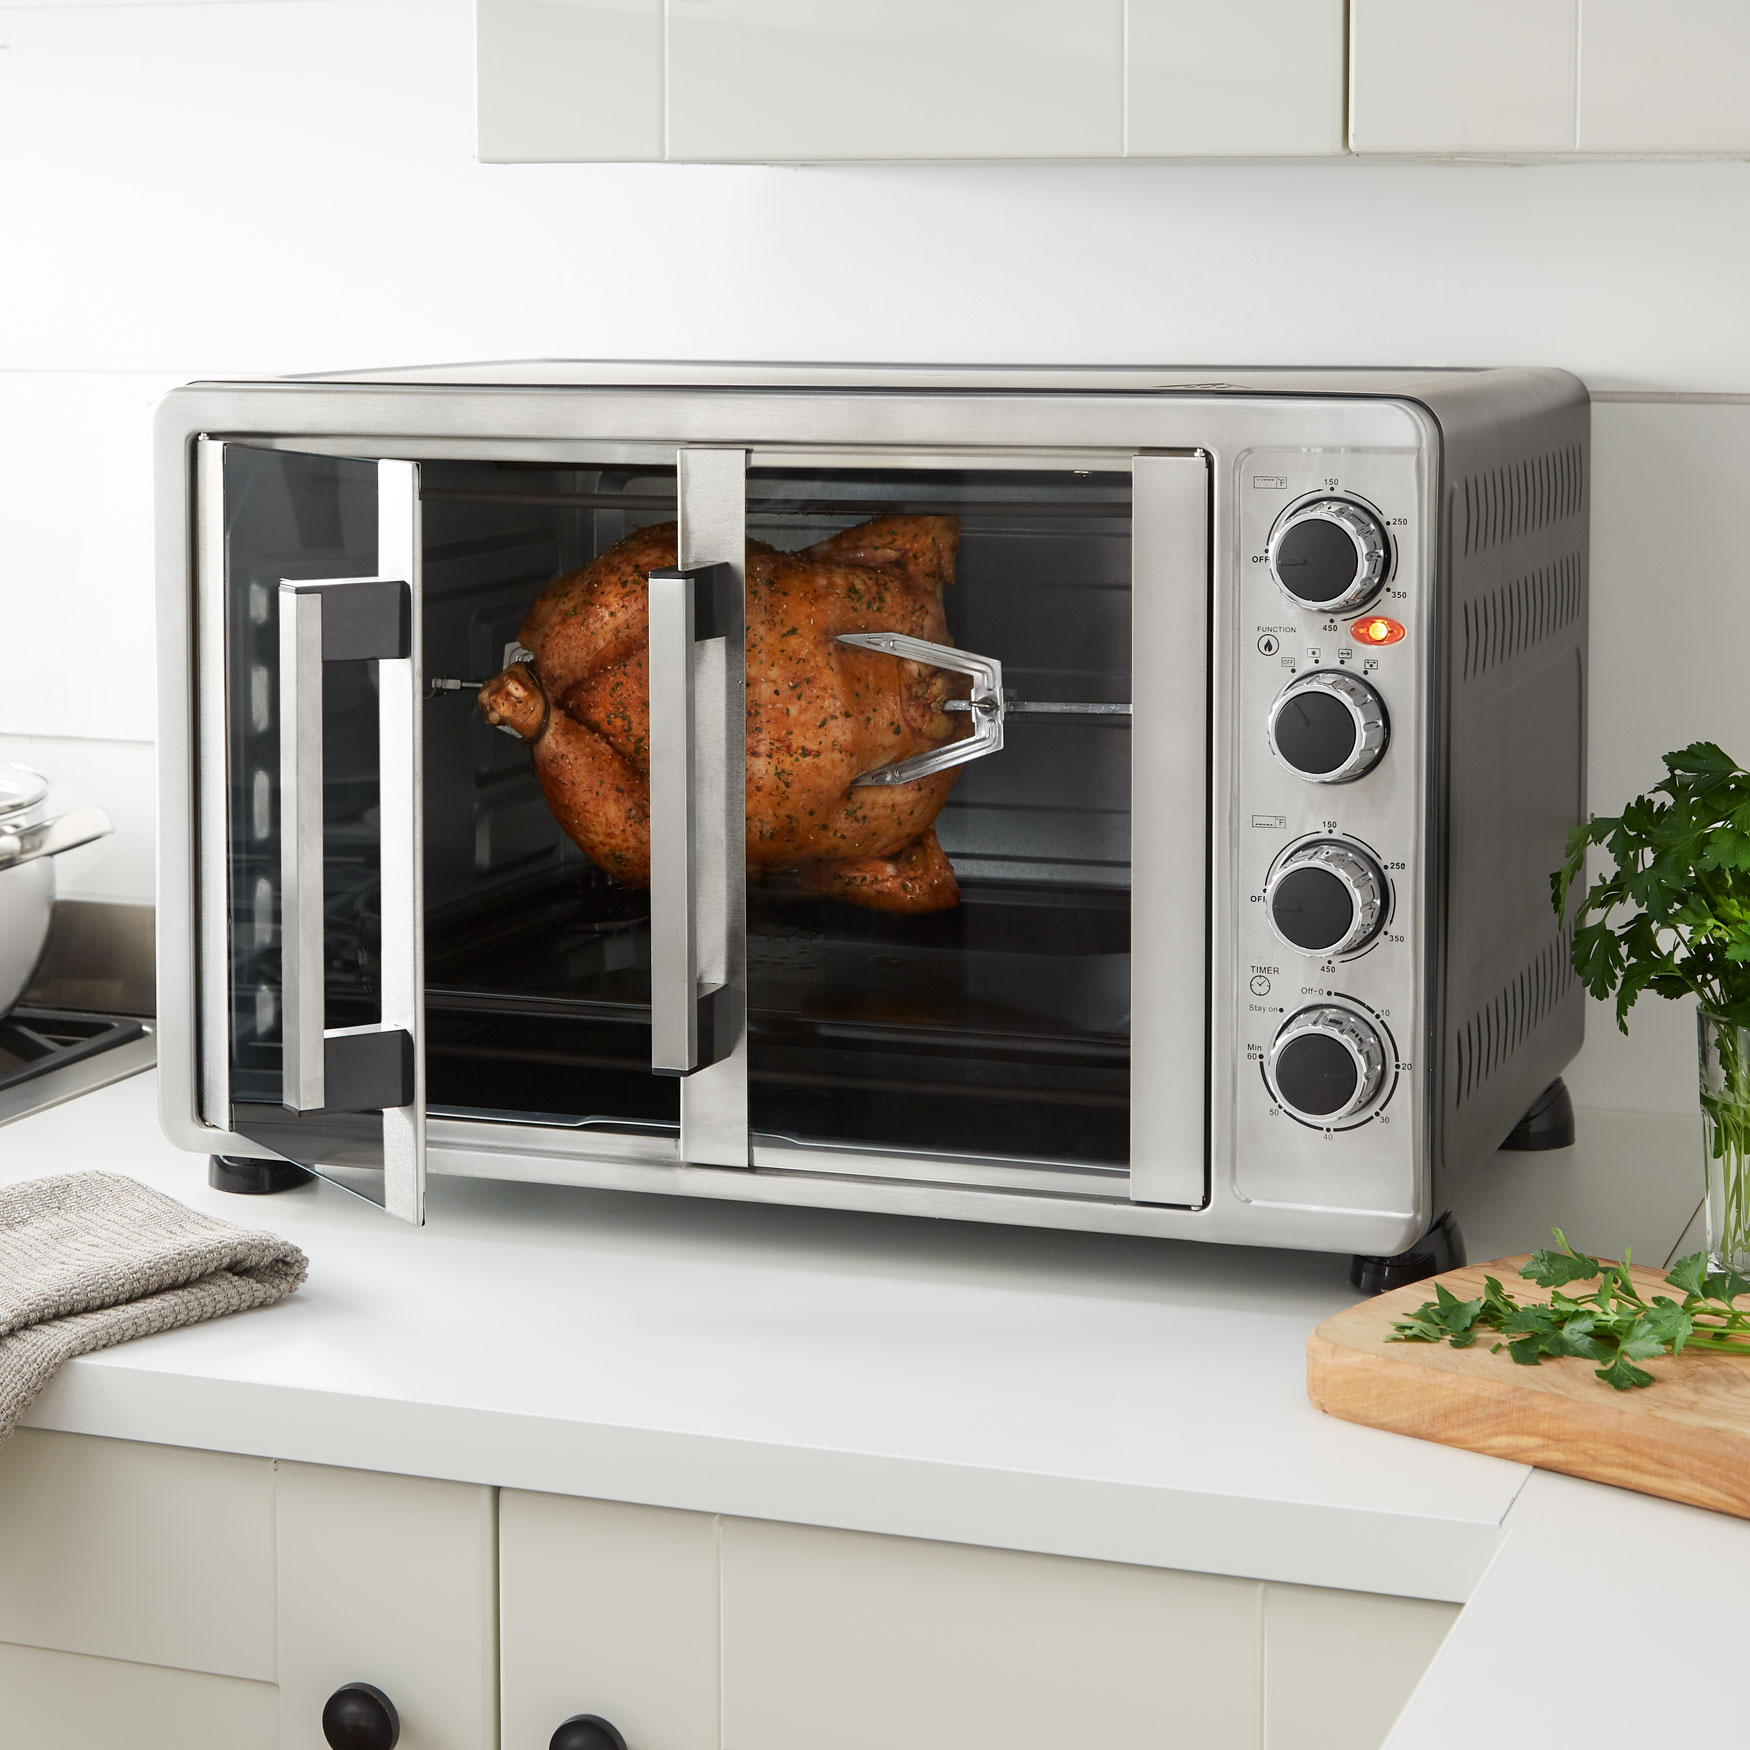 Convection Oven, STAINLESS